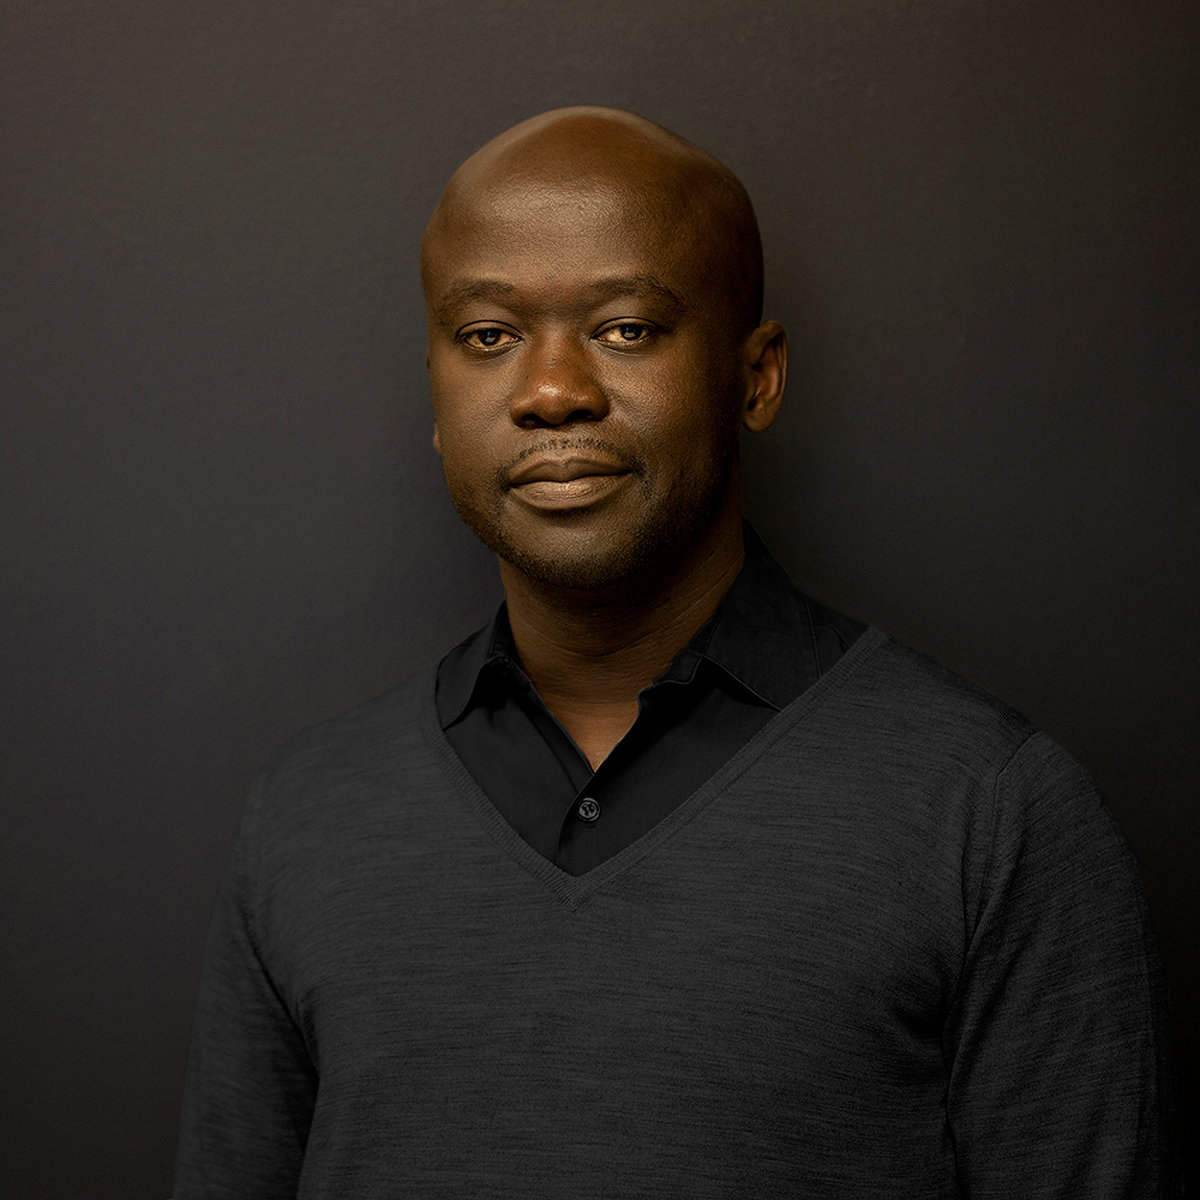 Sir David Adjaye Among Those Receiving Top Honor From UVA, Monticello